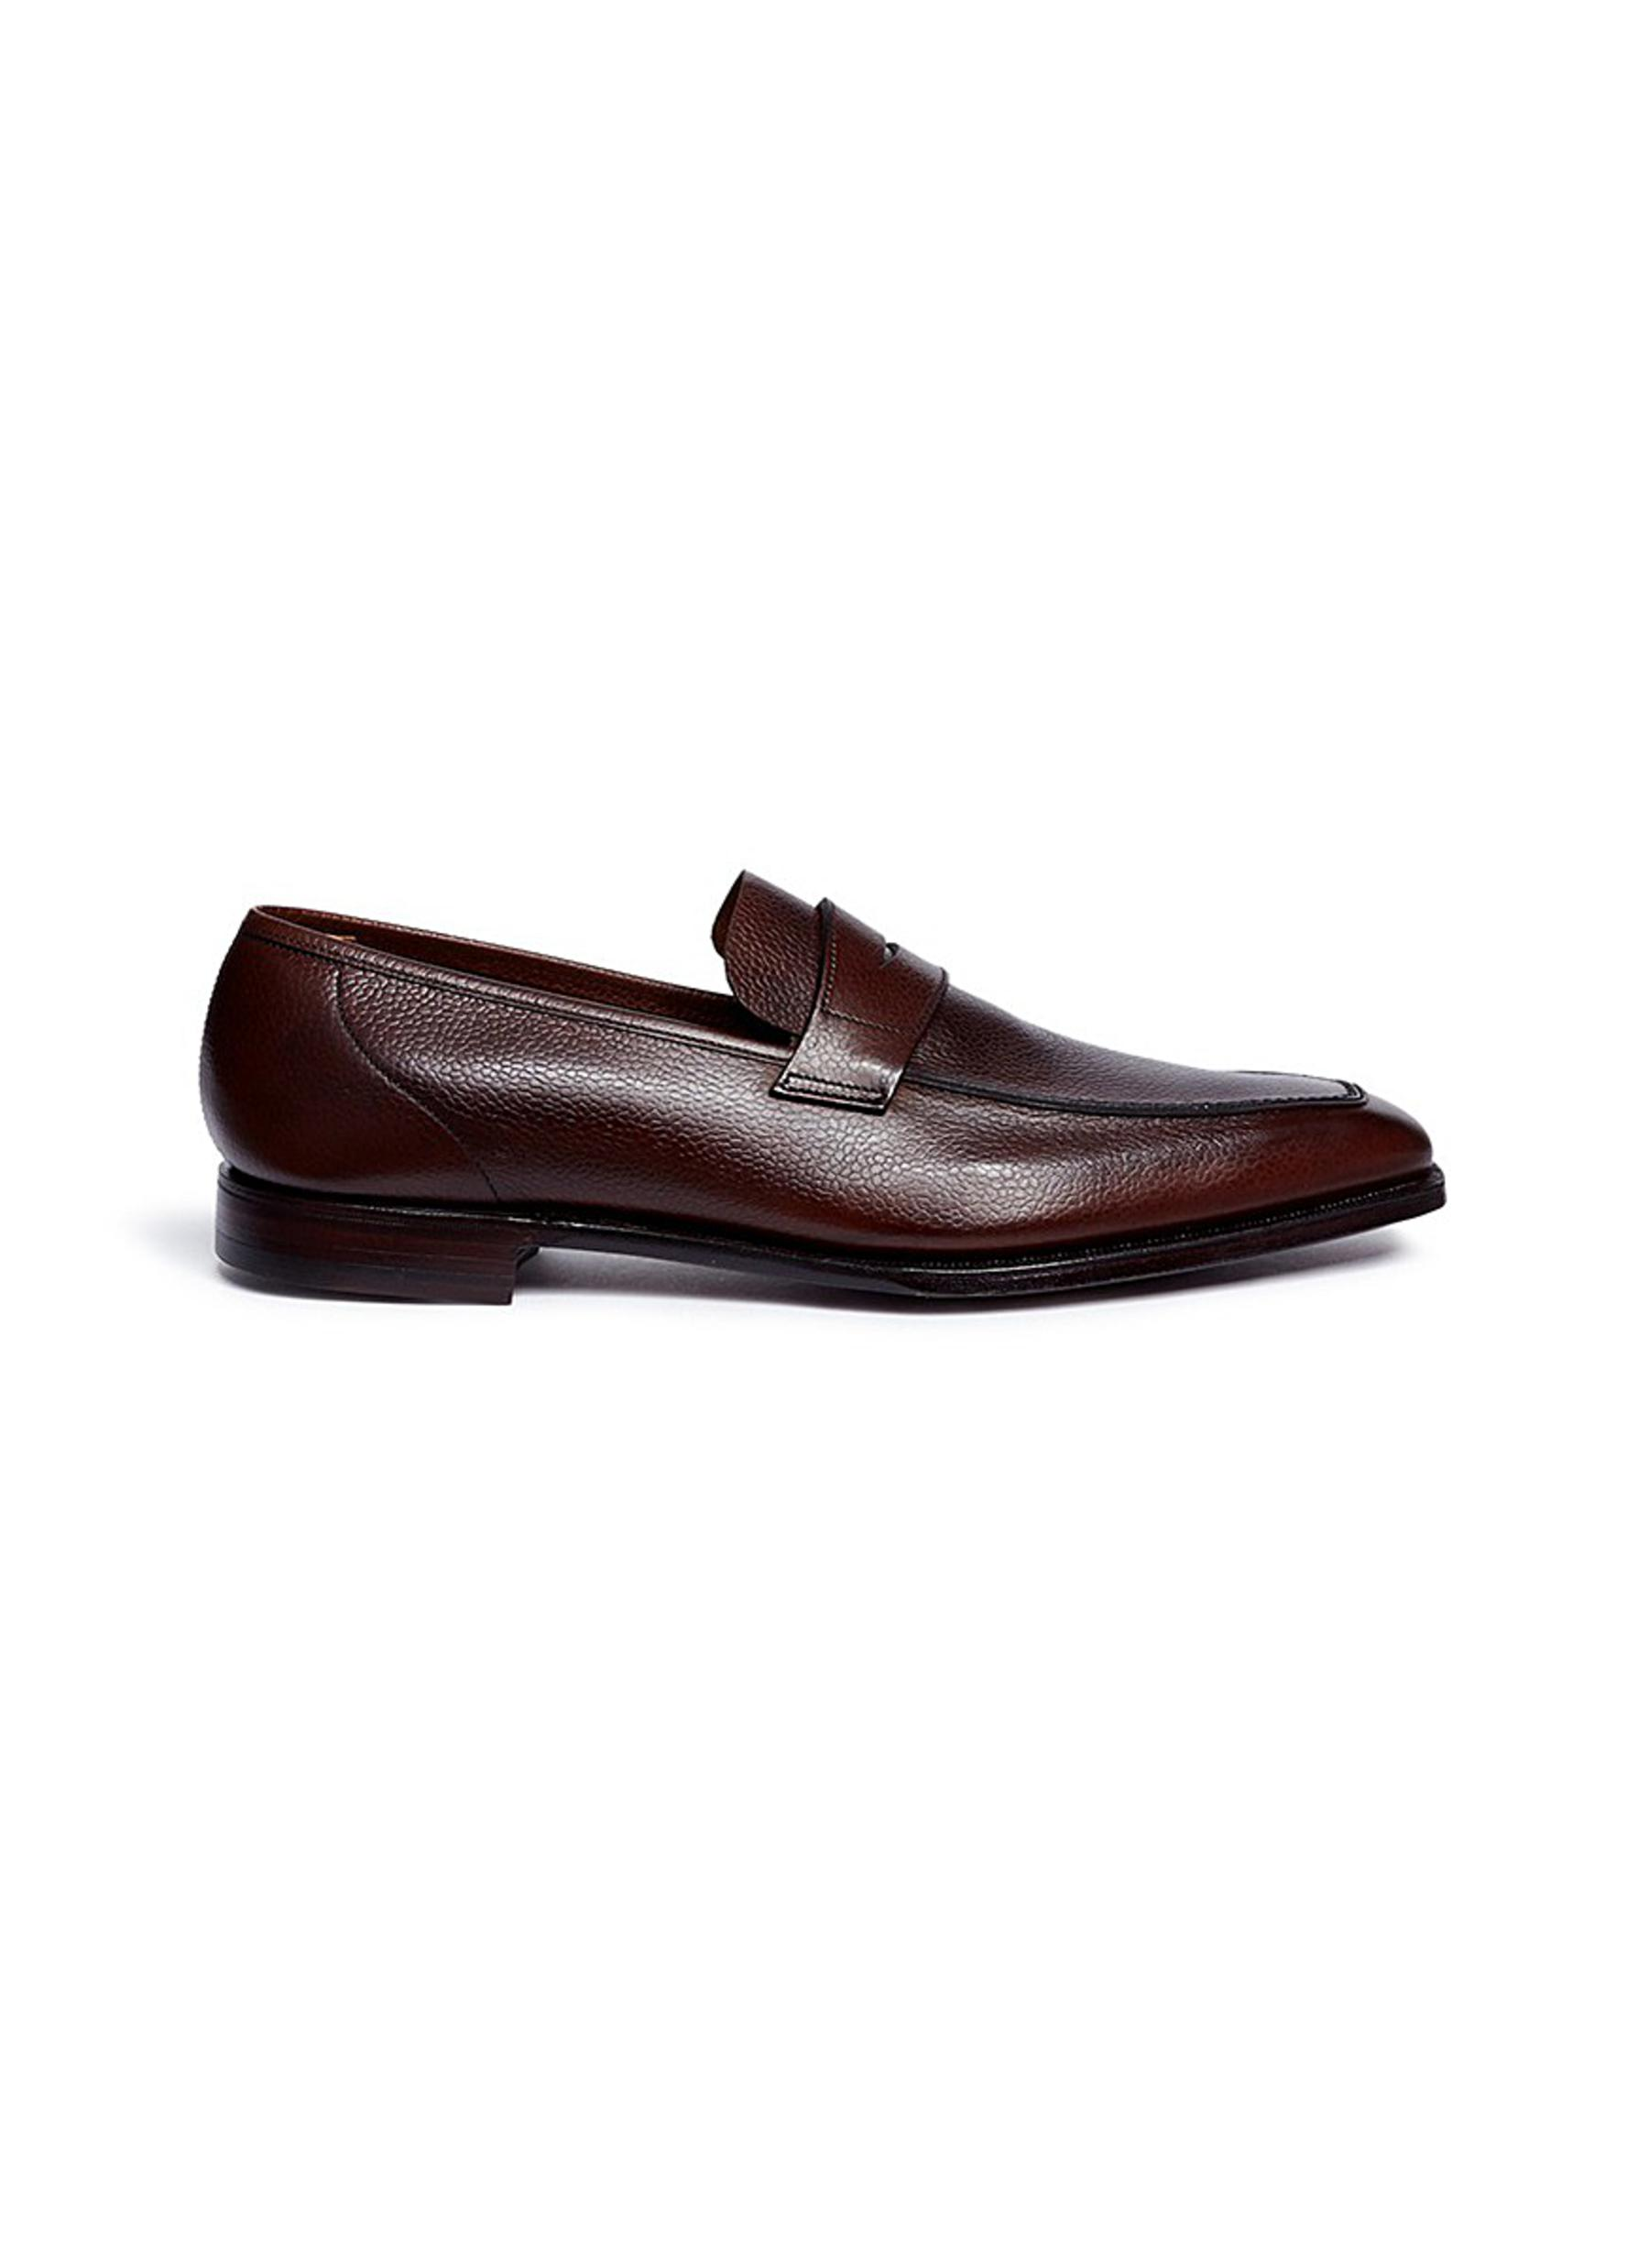 George Scotch grain leather penny loafers by George Cleverley